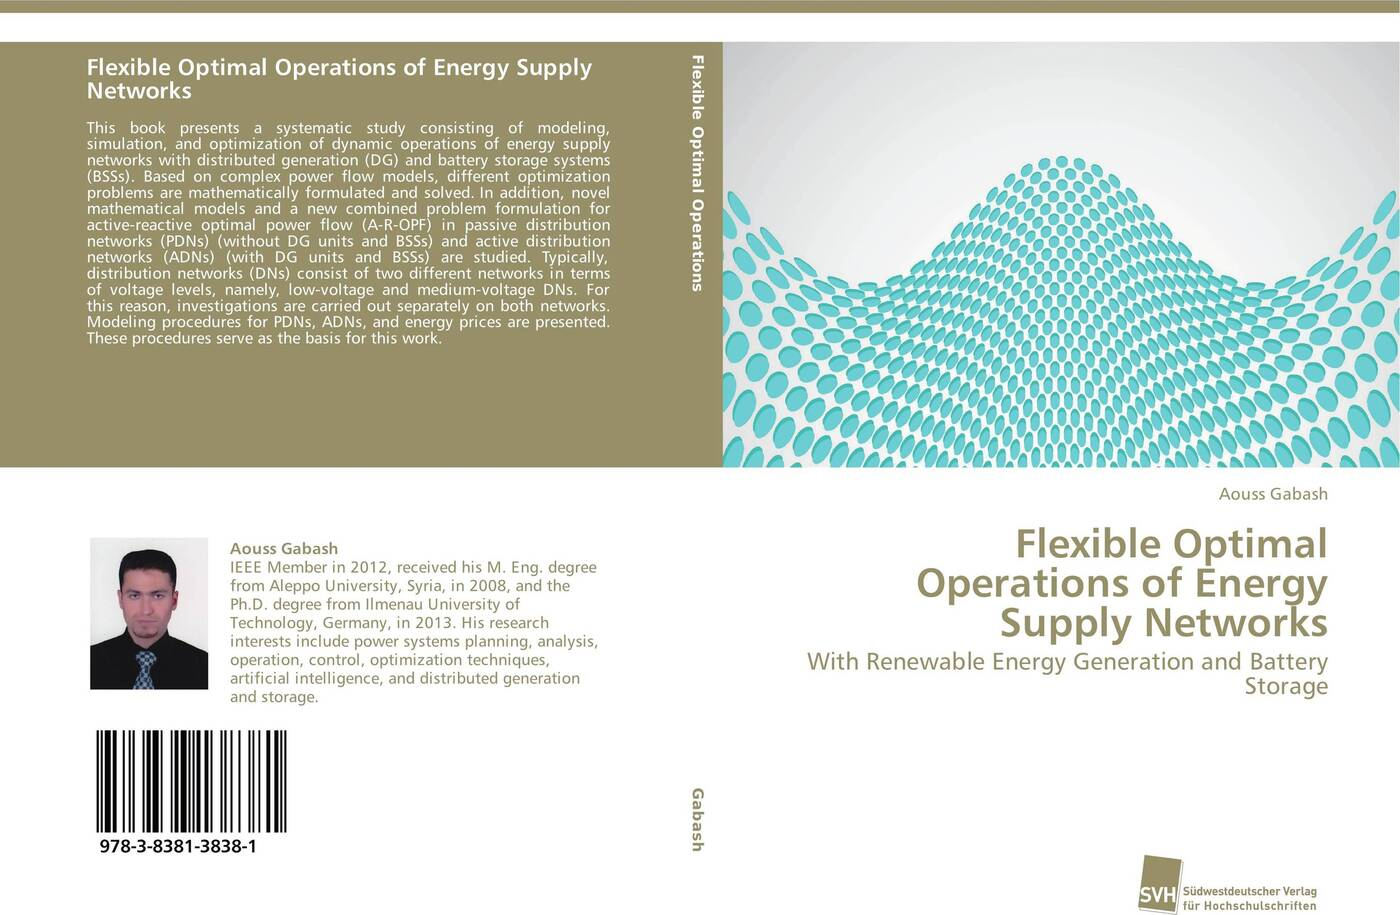 Aouss Gabash Flexible Optimal Operations of Energy Supply Networks marcel heisig supply networks koordination uberbetrieblicher prozesse mithilfe der simulation